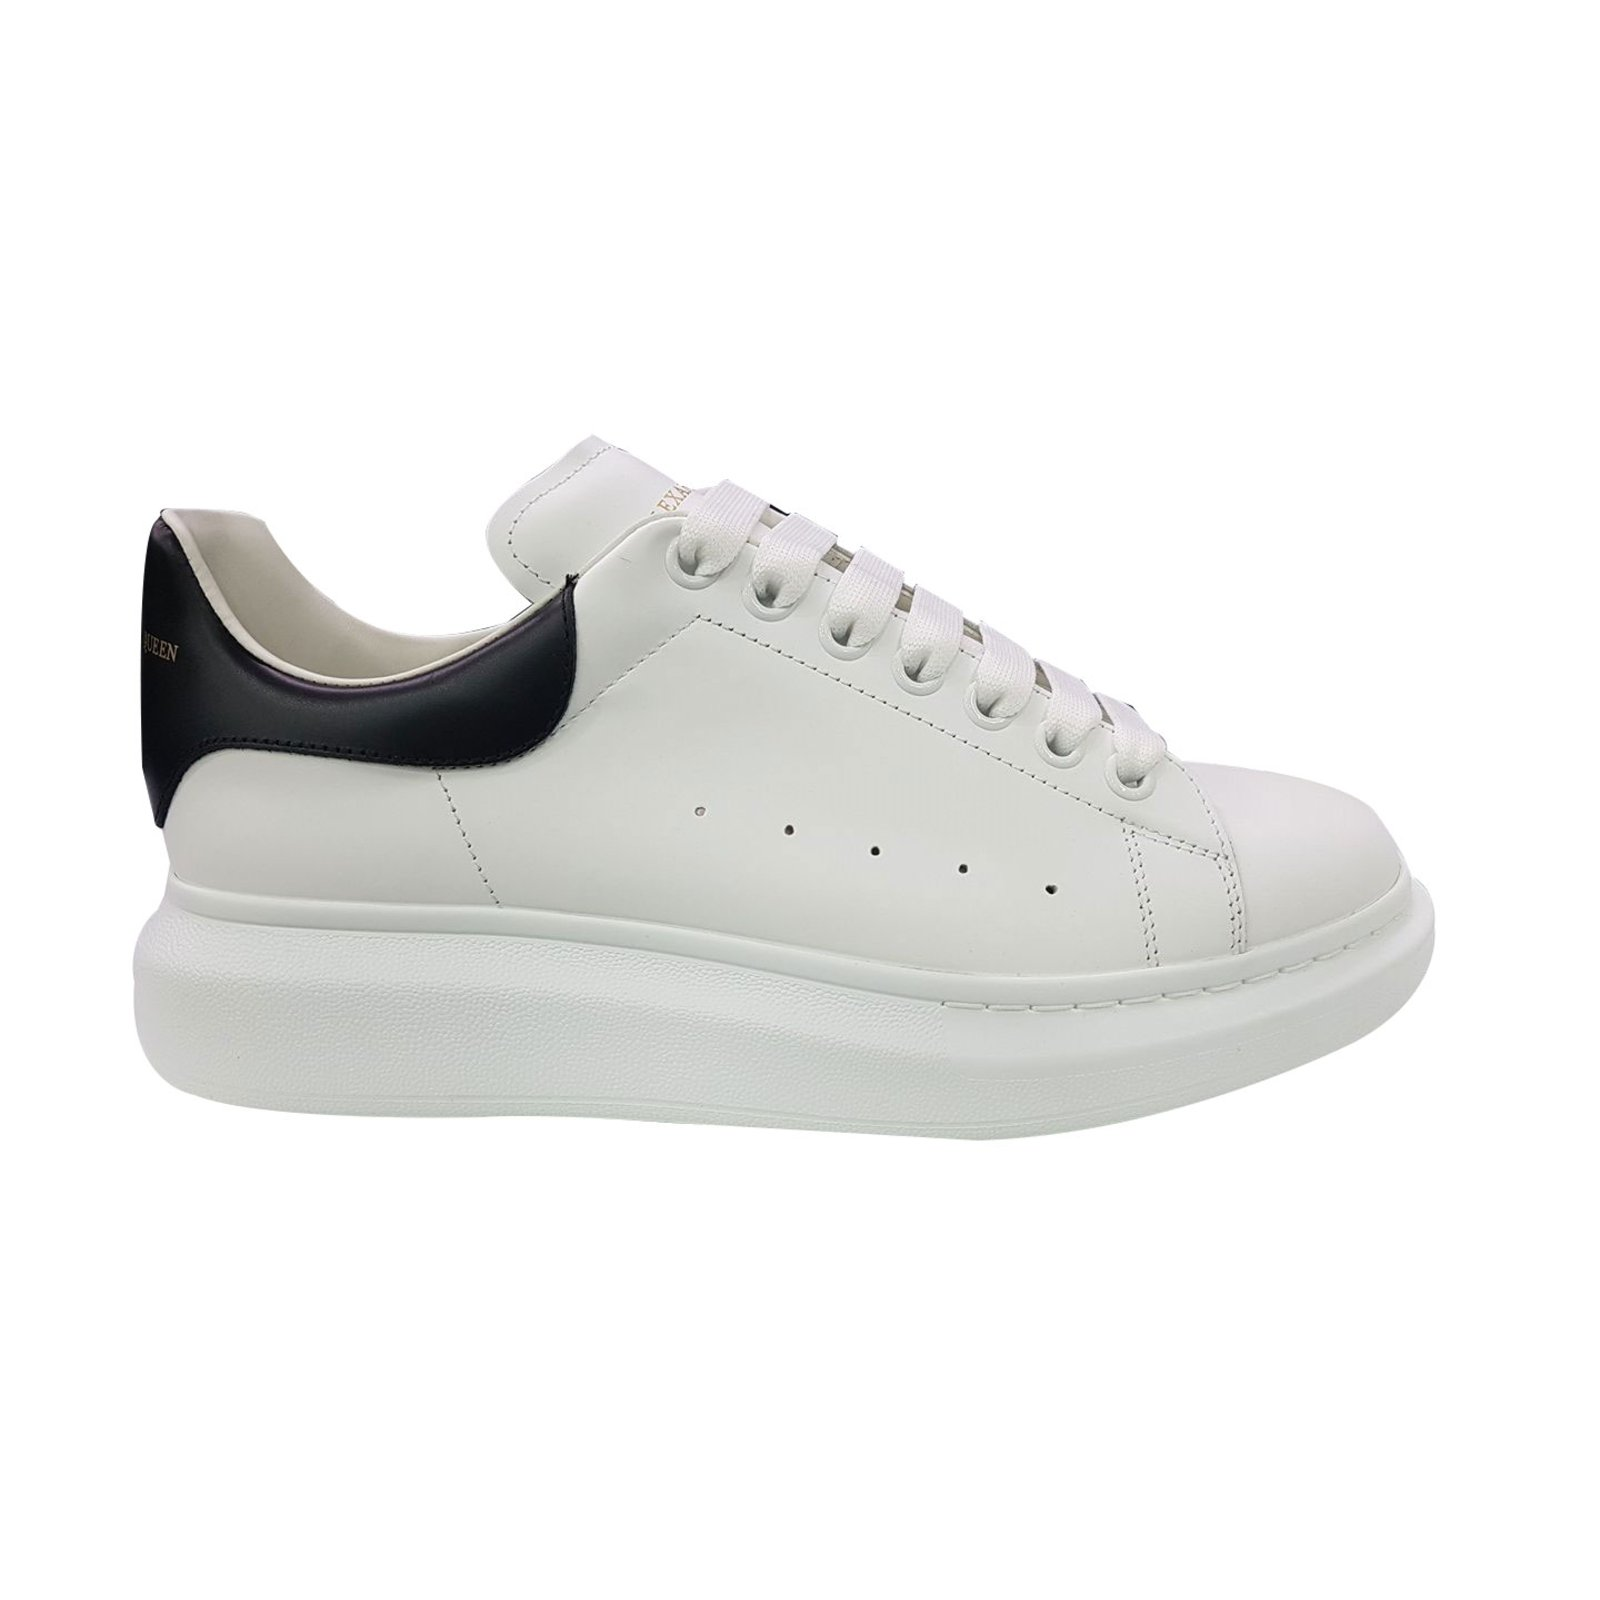 e9ec10783498 Alexander Mcqueen sneakers Sneakers Leather Black,White ref.69012 ...